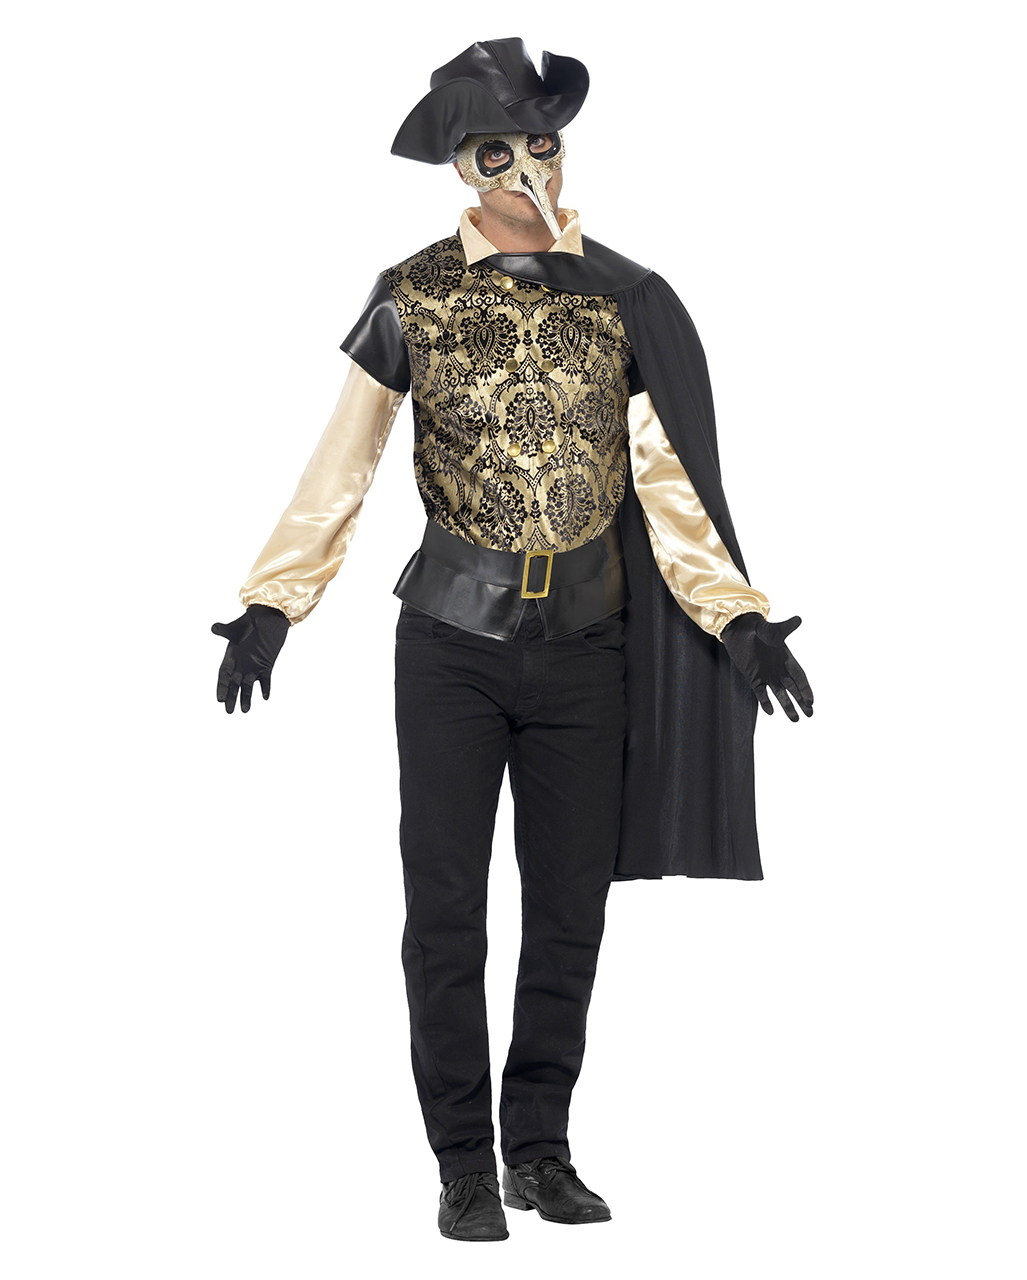 Venetian Plague Doctor Costume ...  sc 1 st  Horror-Shop.com & Venetian Plague Doctor Costume | Venice Doctor costume for men ...